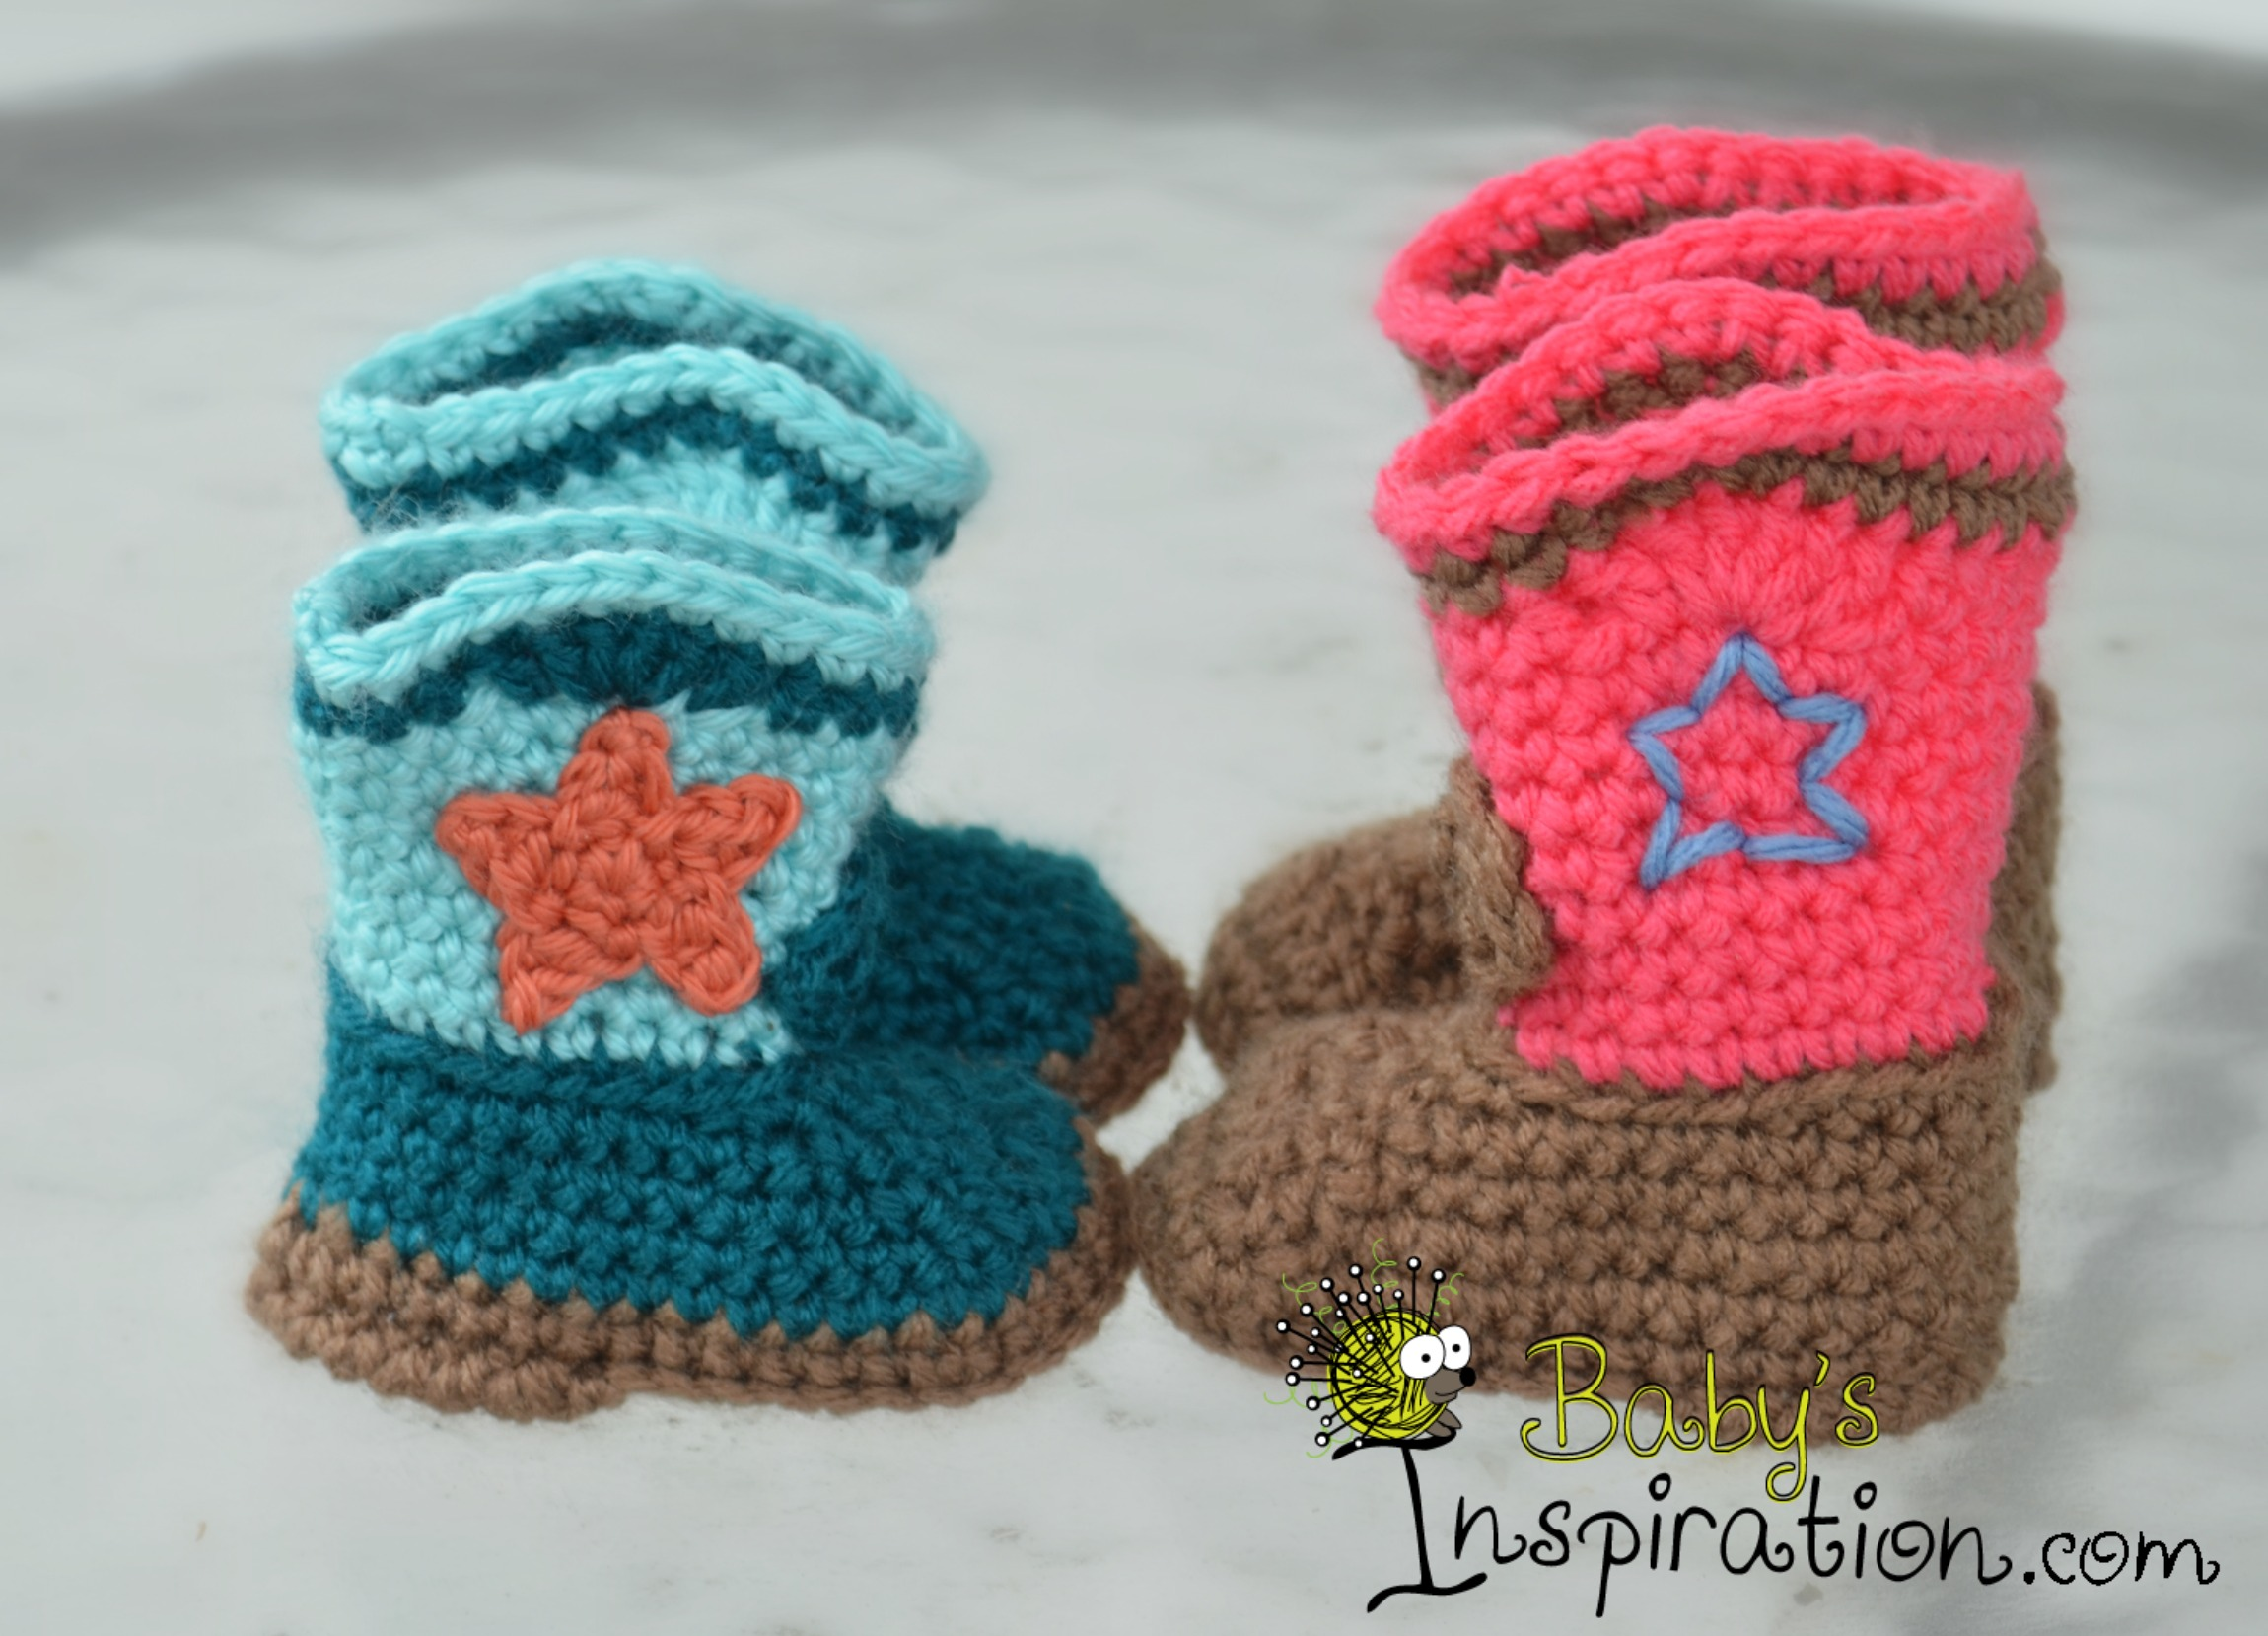 Crochet Mini Cowboy Hat Pattern : Crocheted Cowboy or Cowgirl Boots ? Babys Inspiration ...